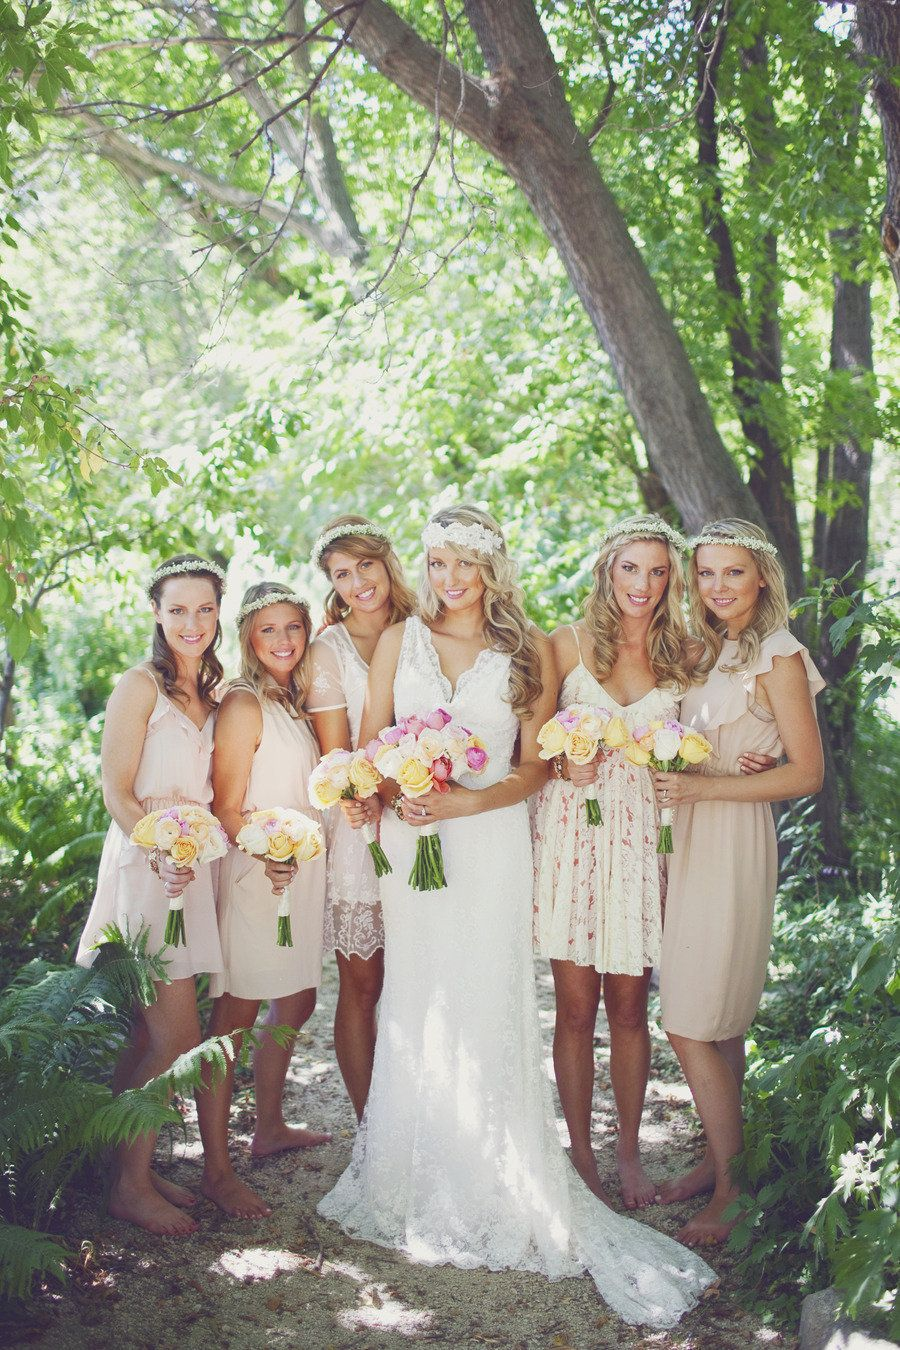 Whimsical diy garden party wedding in winnipeg from simply rosie whimsical diy garden party wedding in winnipeg from simply rosie photography ombrellifo Choice Image